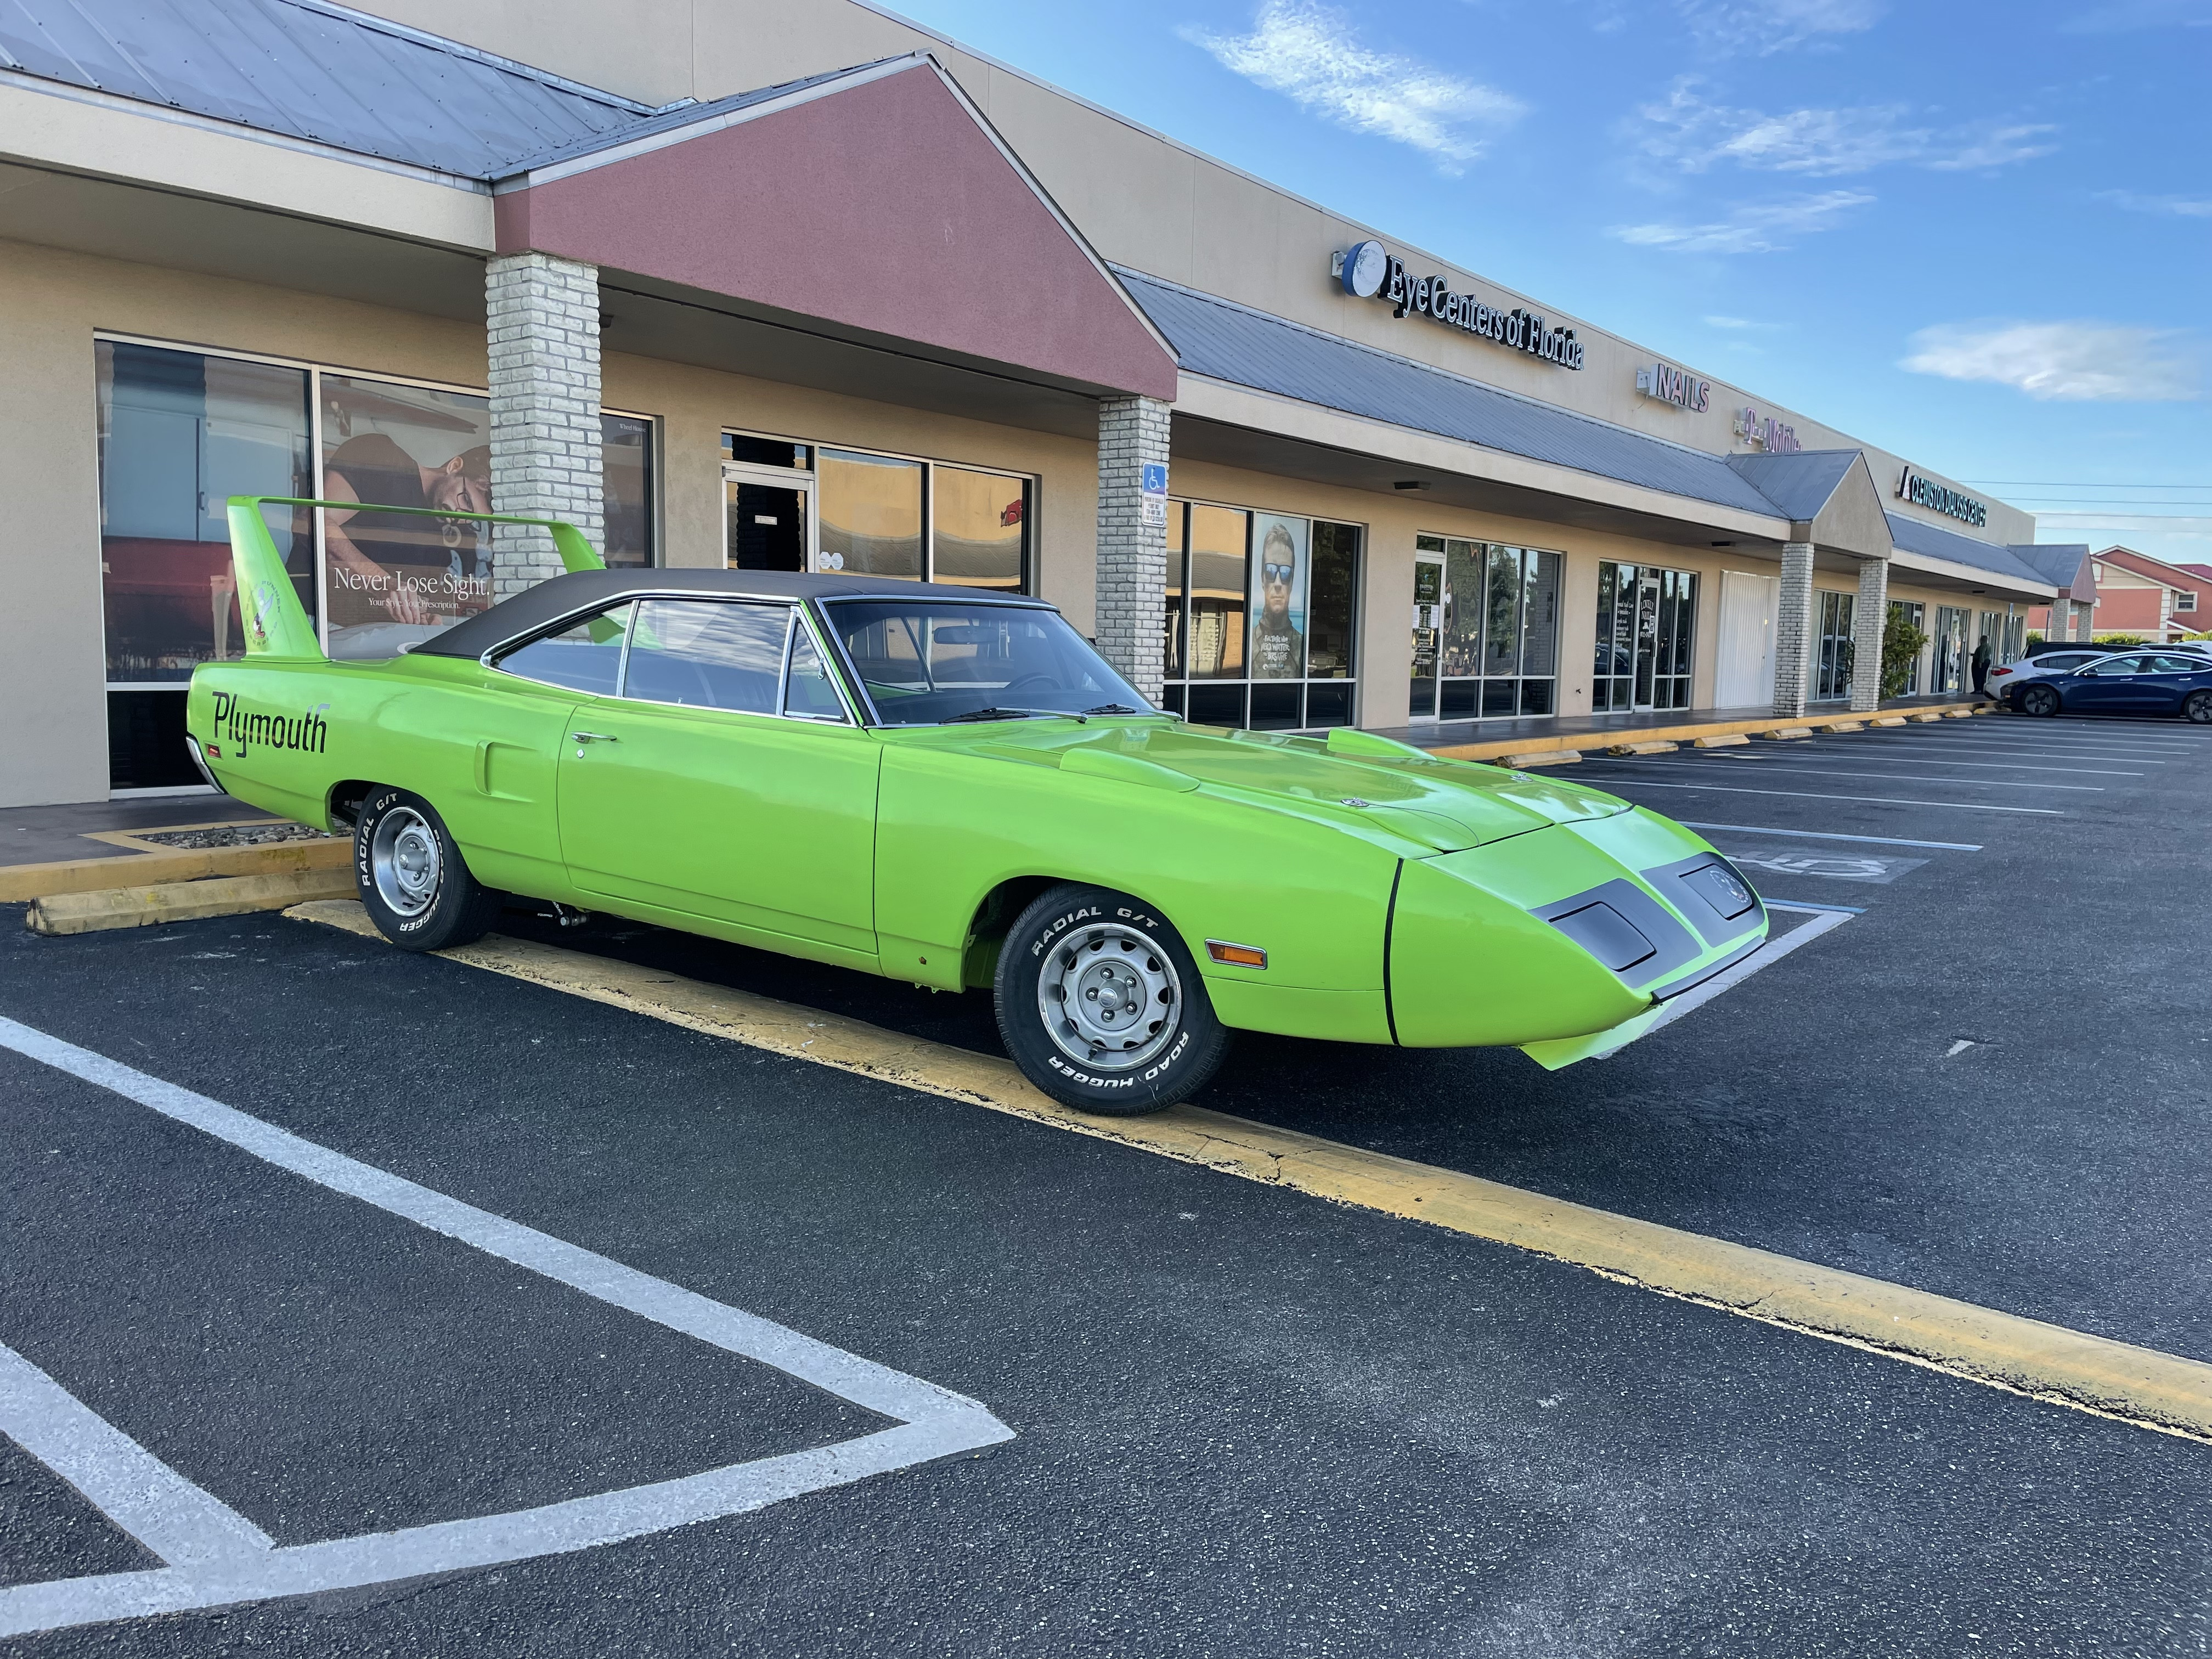 1970 Plymouth Hire Clewiston